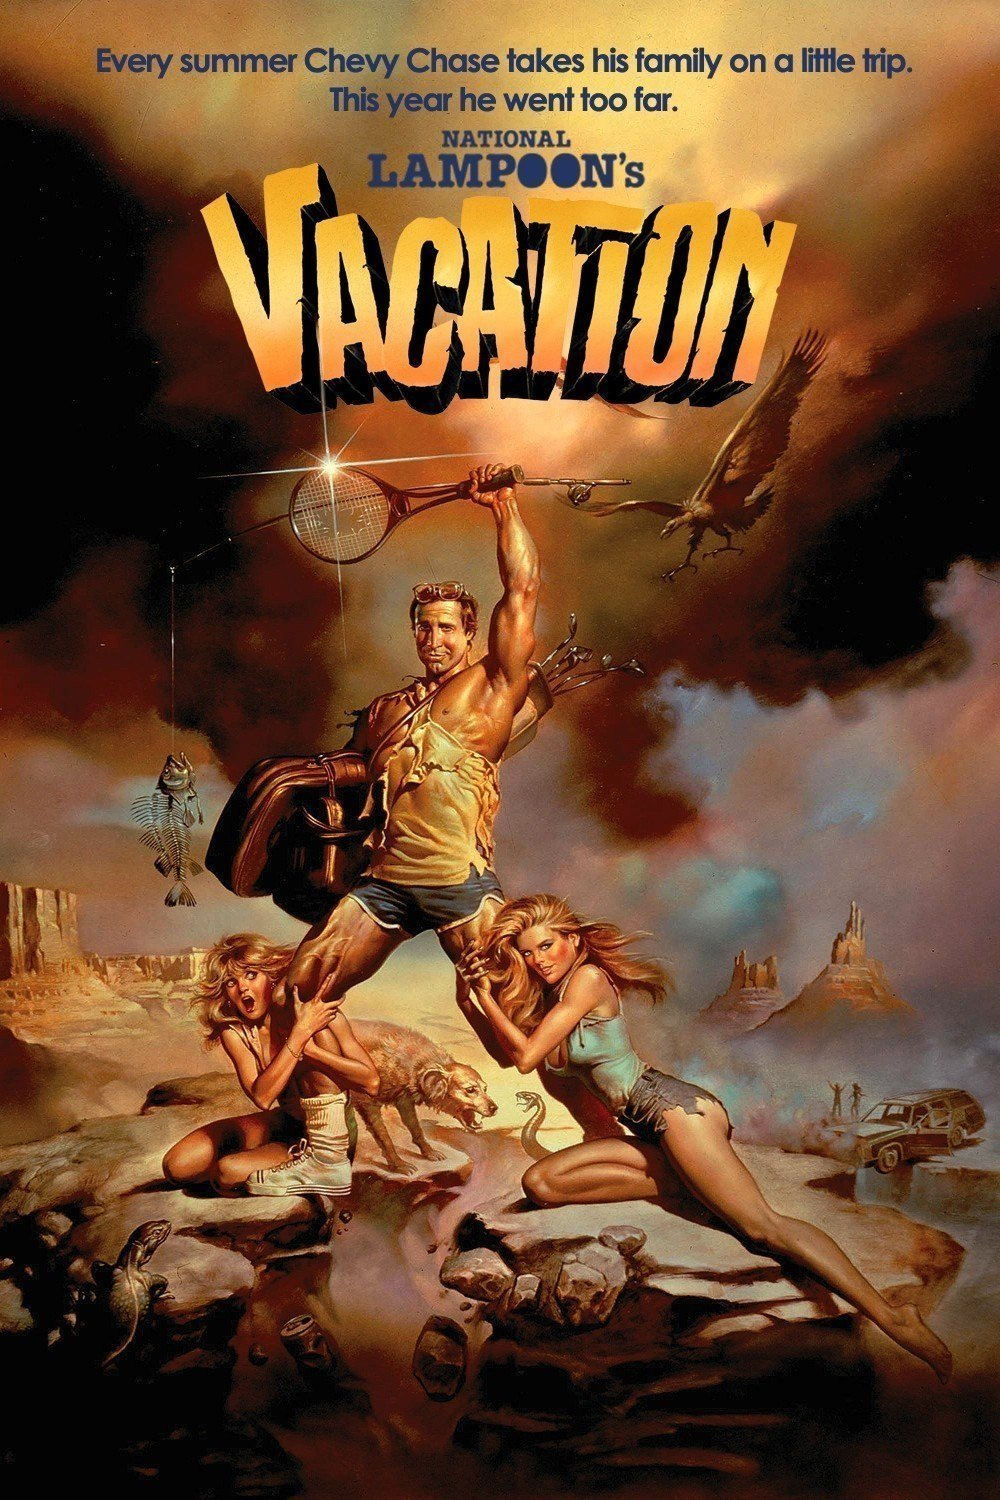 Critique : La Saga National Lampoon's Vacation